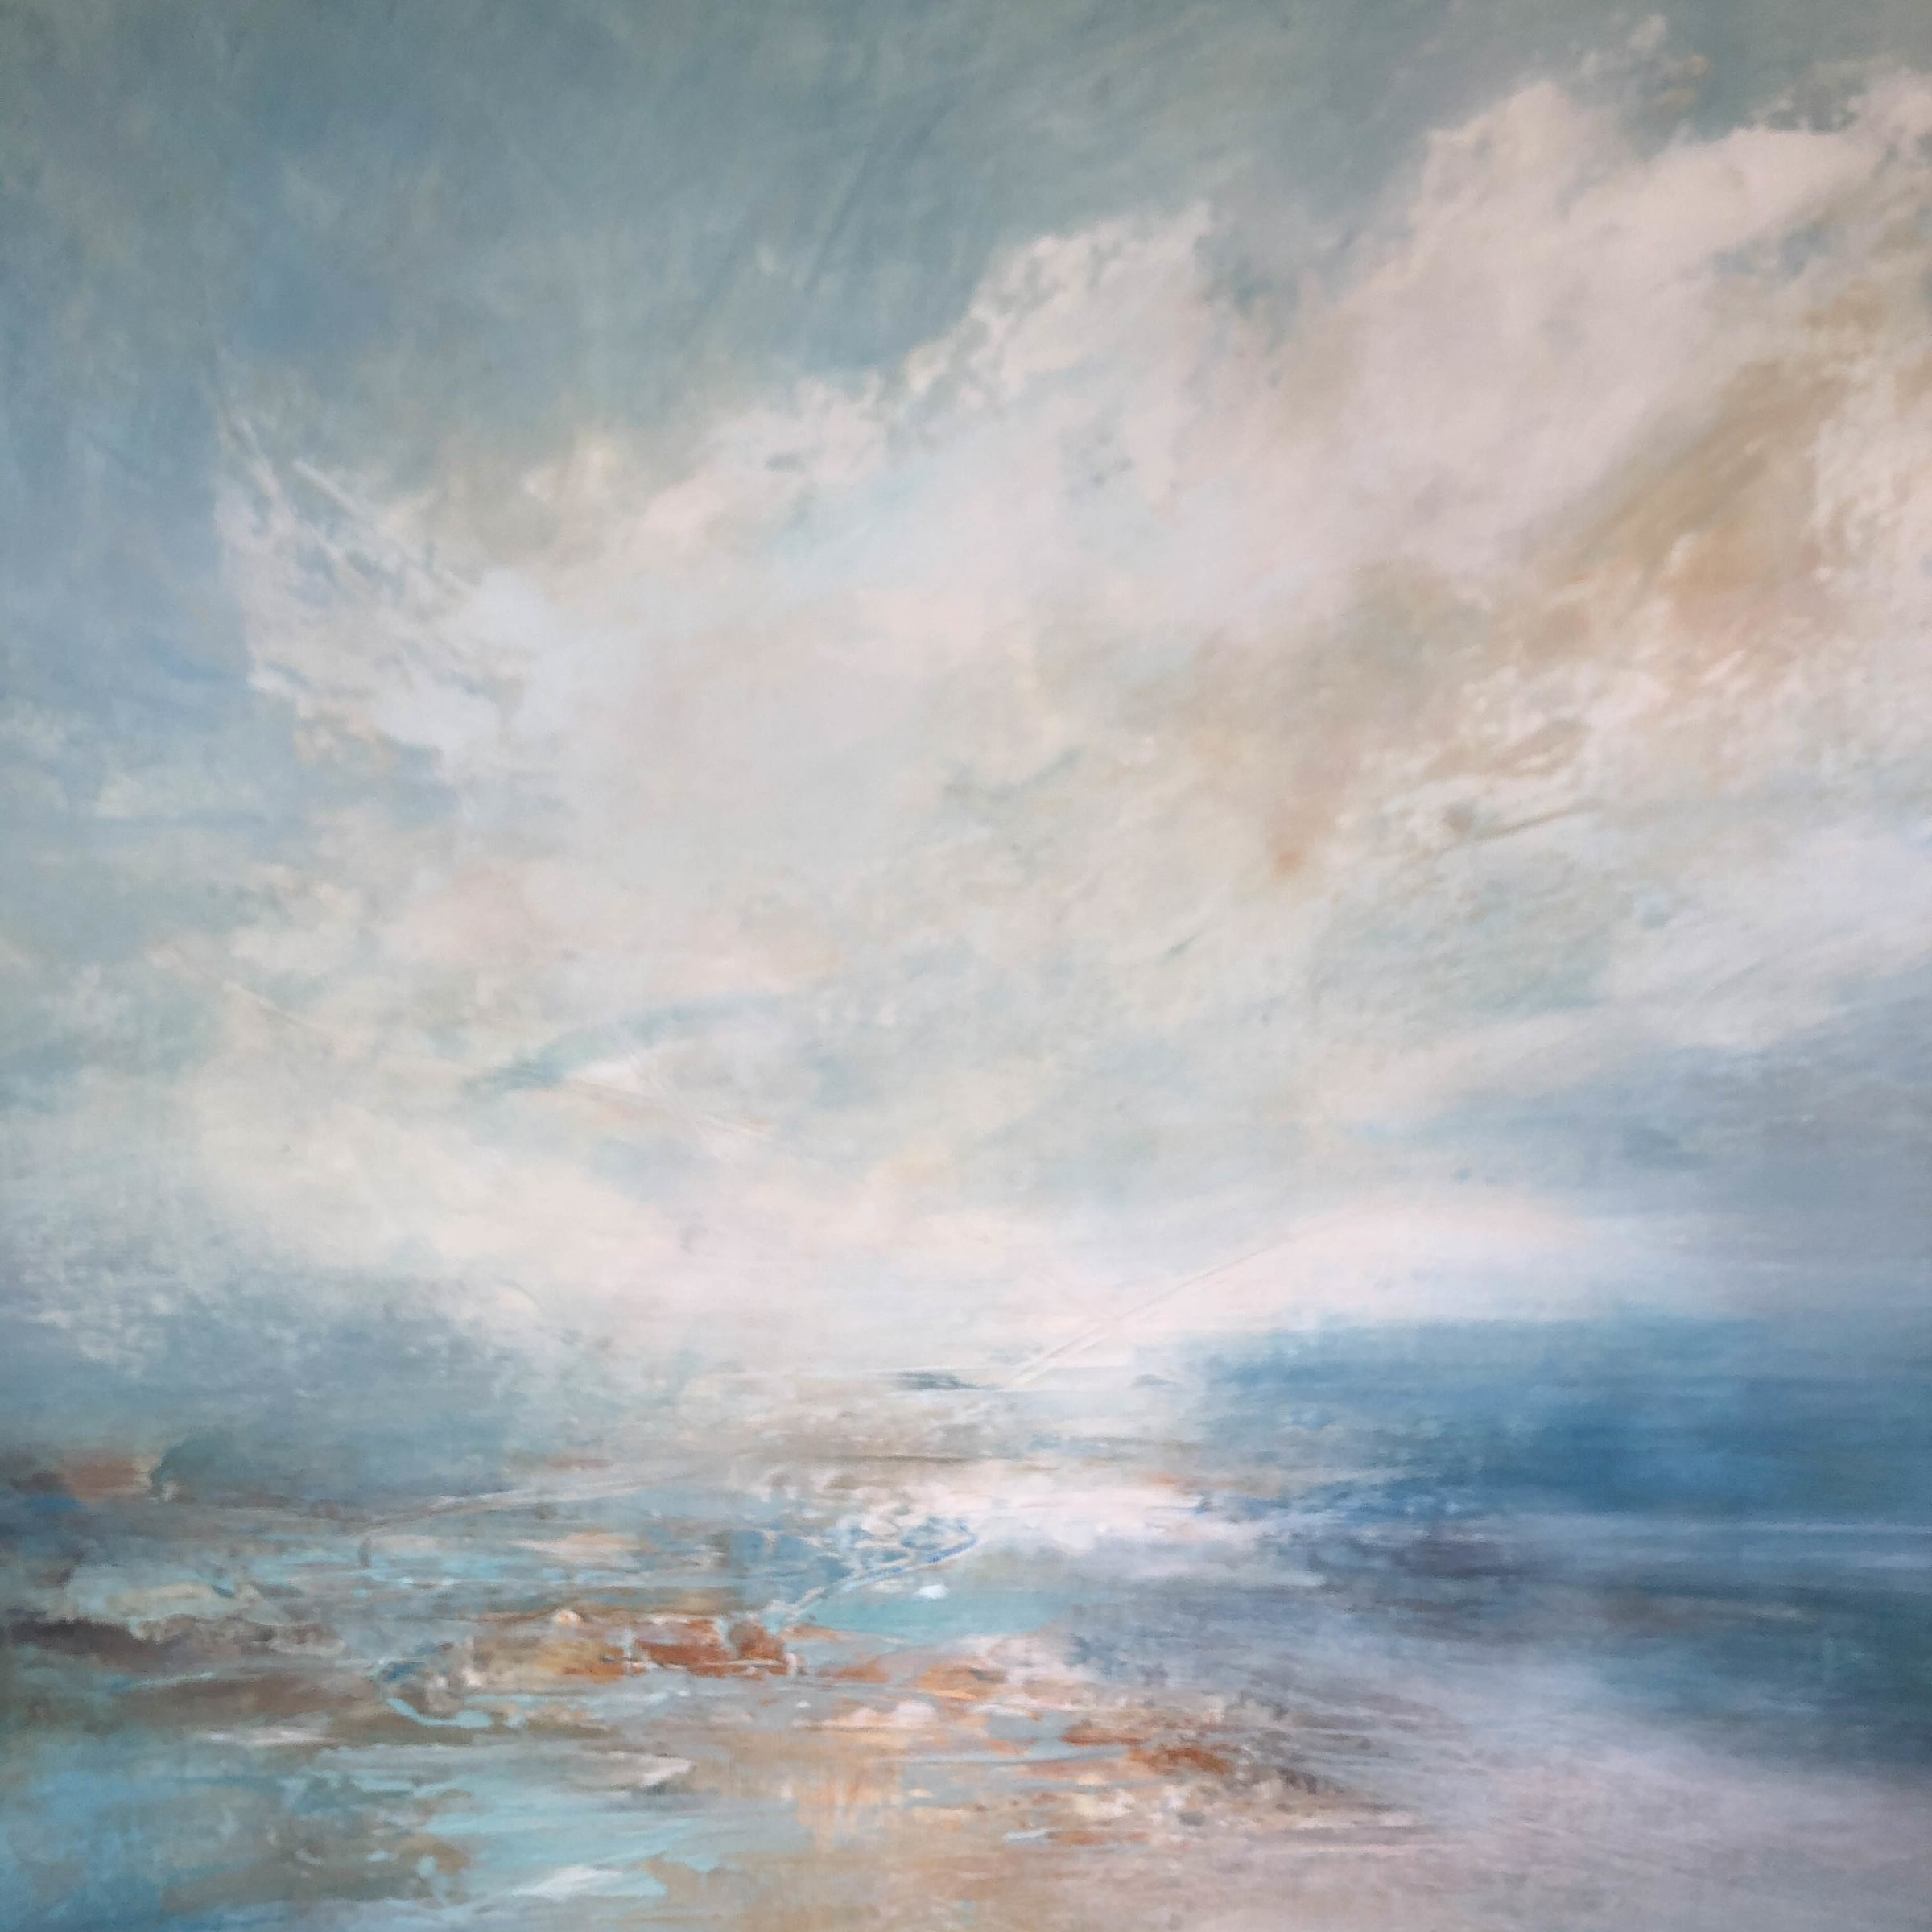 "<span class=""link fancybox-details-link""><a href=""/artists/41-erin-ward/works/7225-erin-ward-cloud-reflections-2020/"">View Detail Page</a></span><div class=""artist""><strong>Erin Ward</strong></div> b. 1966 <div class=""title""><em>Cloud Reflections</em>, 2020</div> <div class=""medium"">acrylic on canvas</div> <div class=""dimensions"">h. 61 cm x w. 61 cm</div><div class=""price"">£1,190.00</div><div class=""copyright_line"">Ownart: £119 x 10 Months, 0% APR</div>"